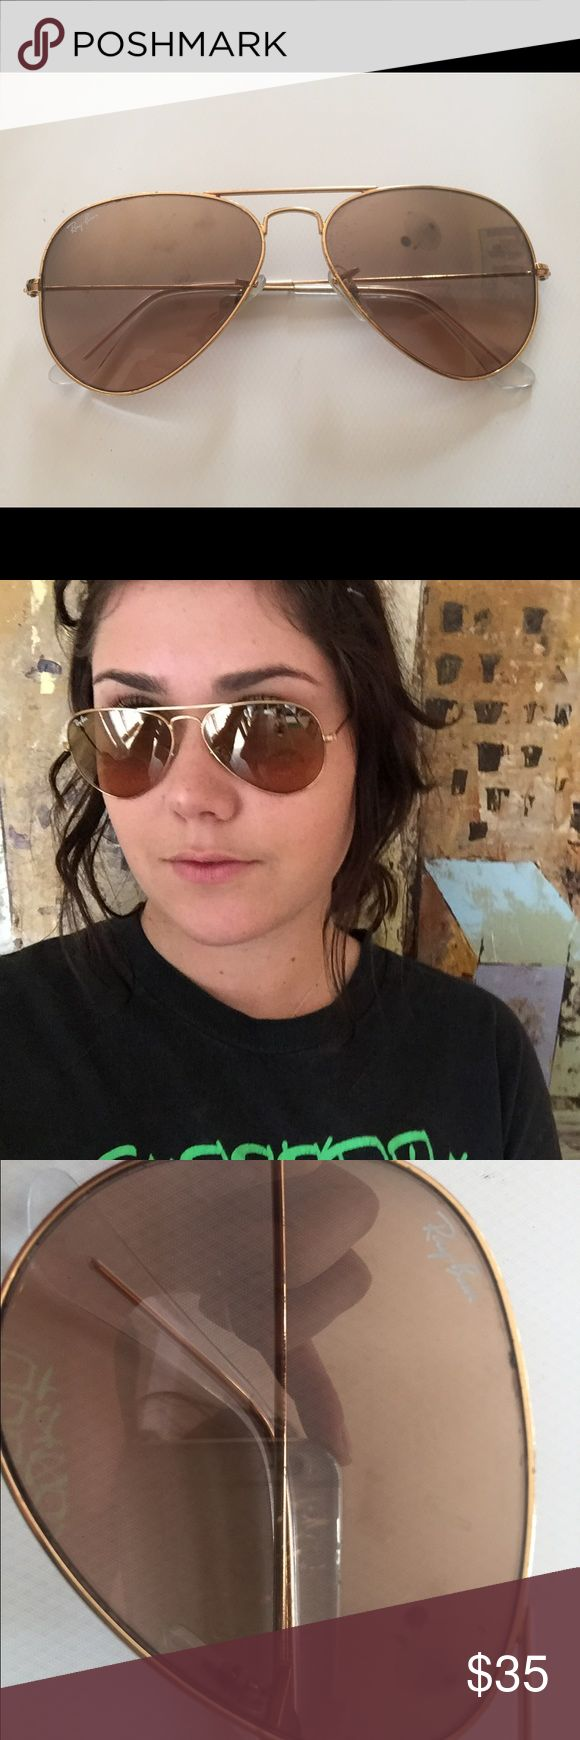 RayBan Aviators Gently used! Almost perfect condition with the slightest scratch on the left eye lens! The scratch is 1 cm long and out of the view. Price negotiable!⭐️💫 Ray-Ban Accessories Sunglasses